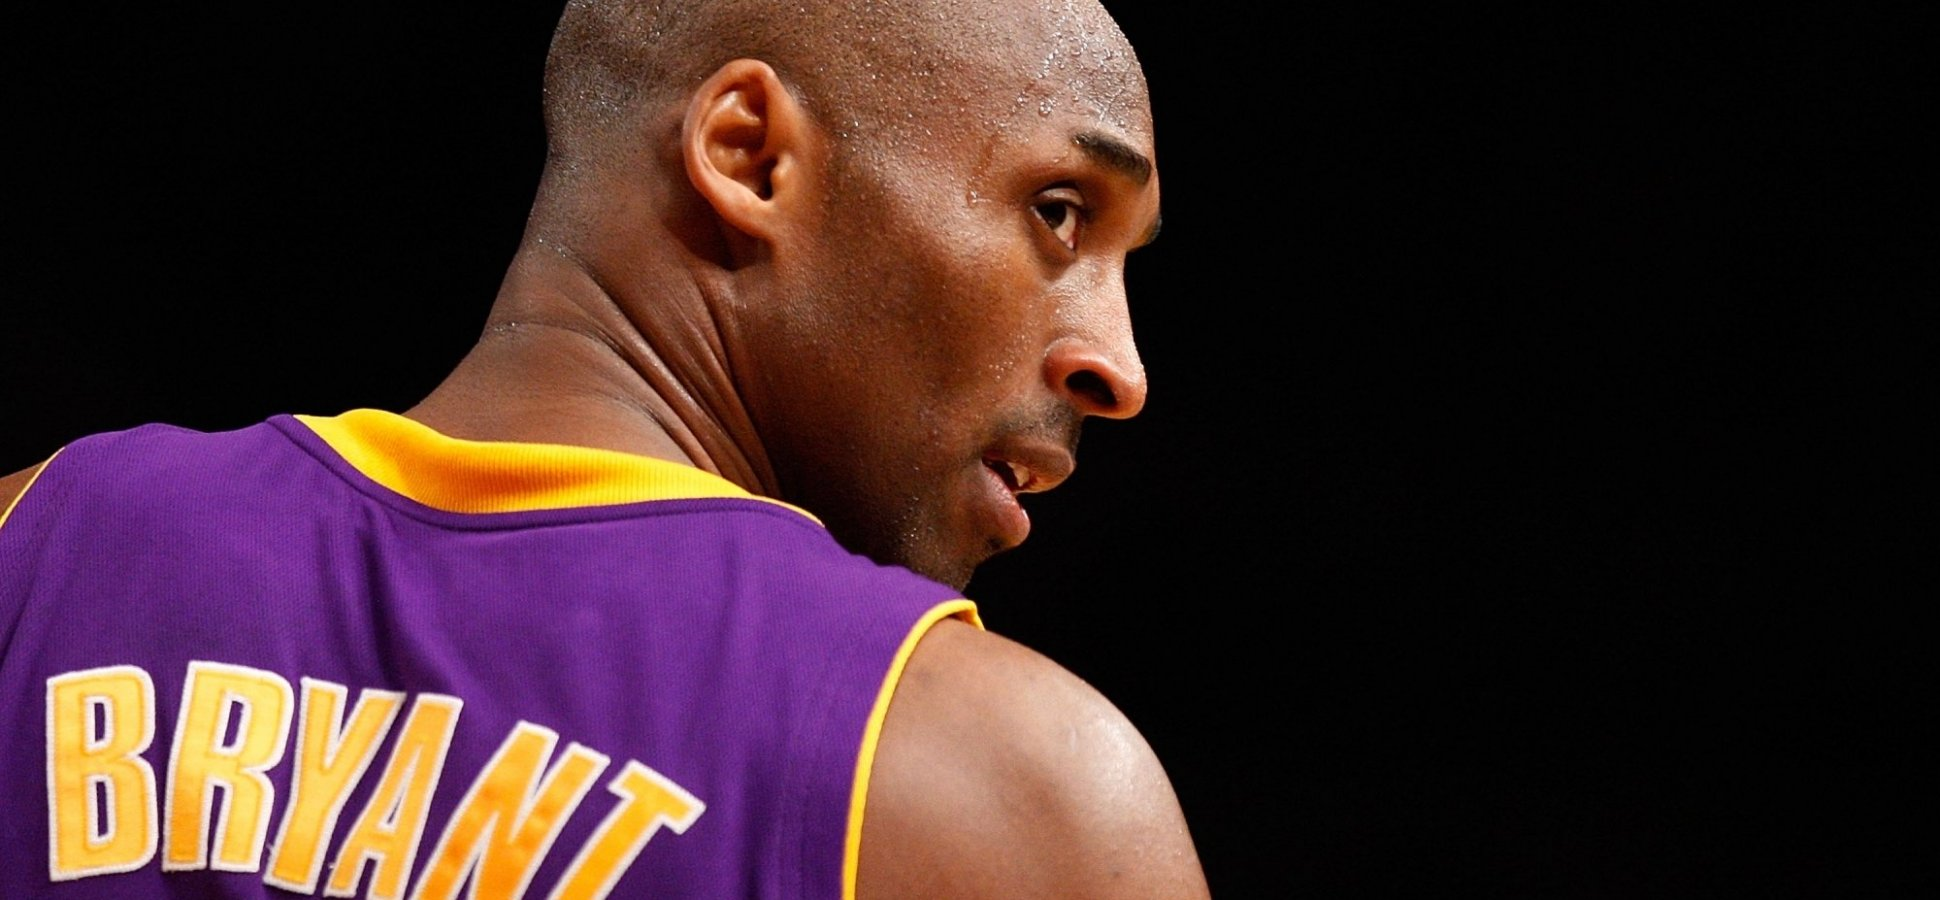 reputable site 0149d 6317b How to Become the Best  3 Things That Made Kobe Bryant One of the Greatest  Players of All Time   Inc.com